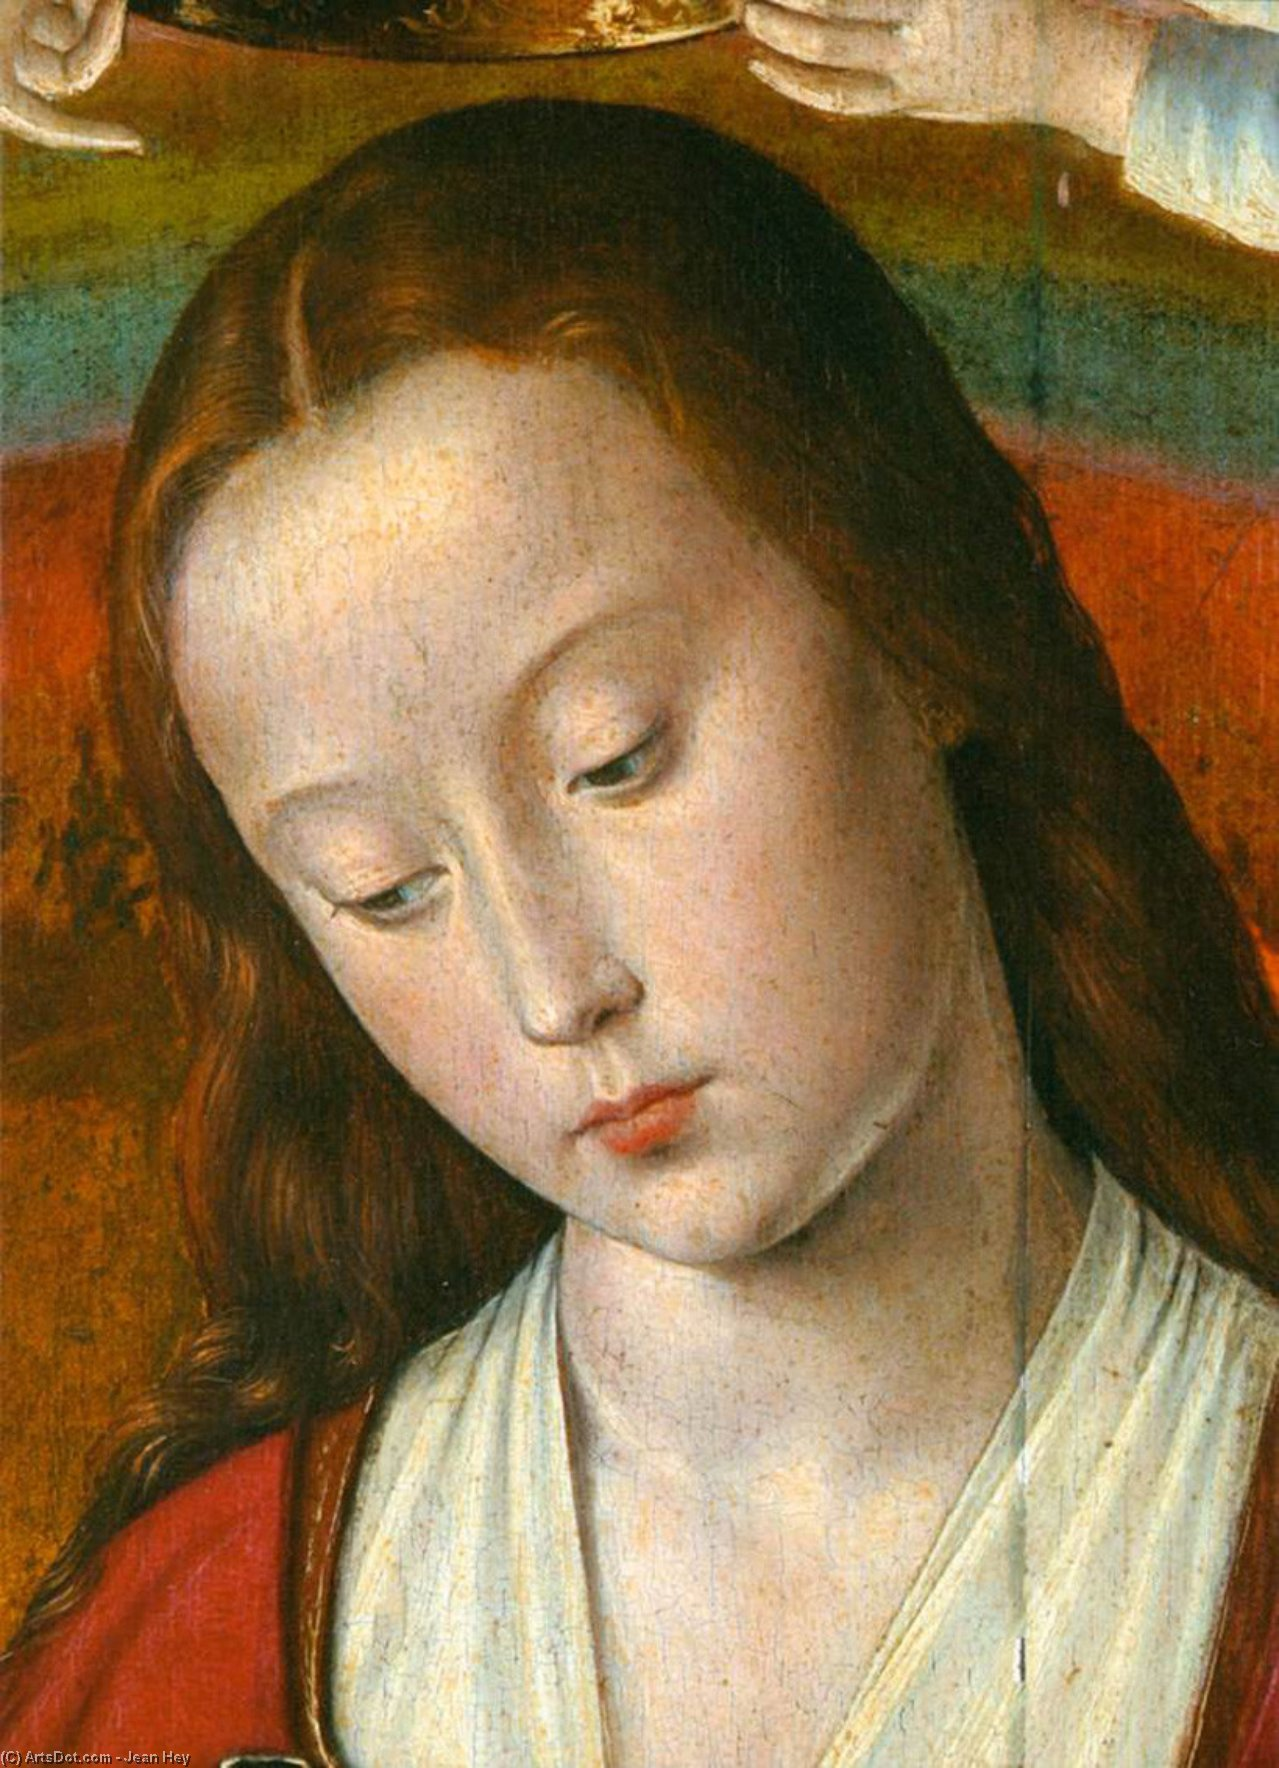 The Moulins Triptych (detail), 1499 by Jean Hey